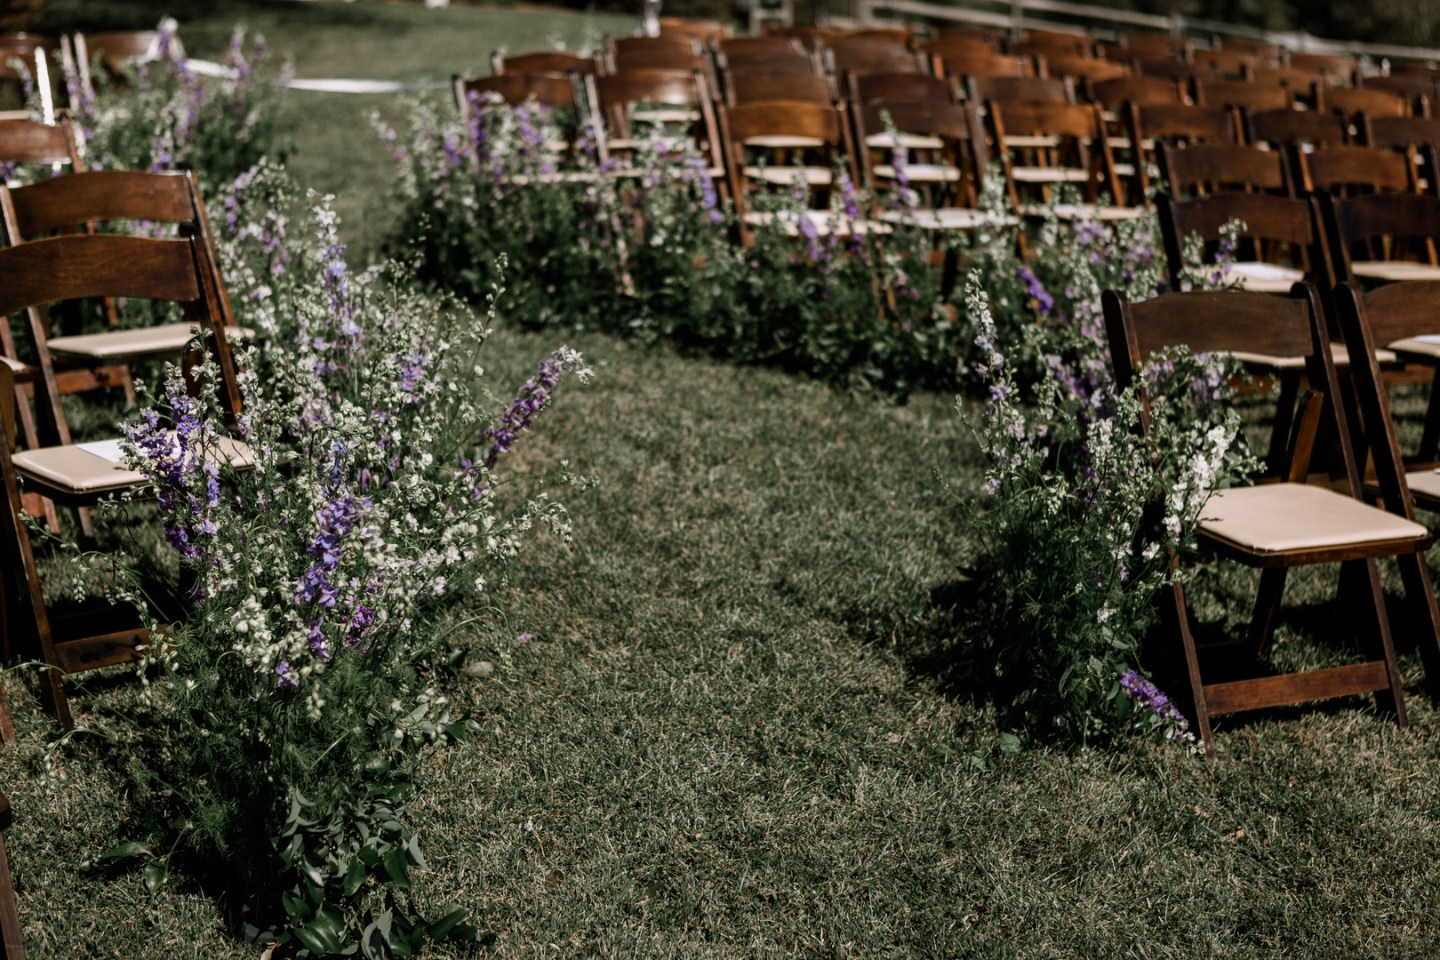 ffve2bvsmxf2qbhykg46_big-1440x960 Southern Hospitality: Outdoor Nuptials in Thomasville, NC